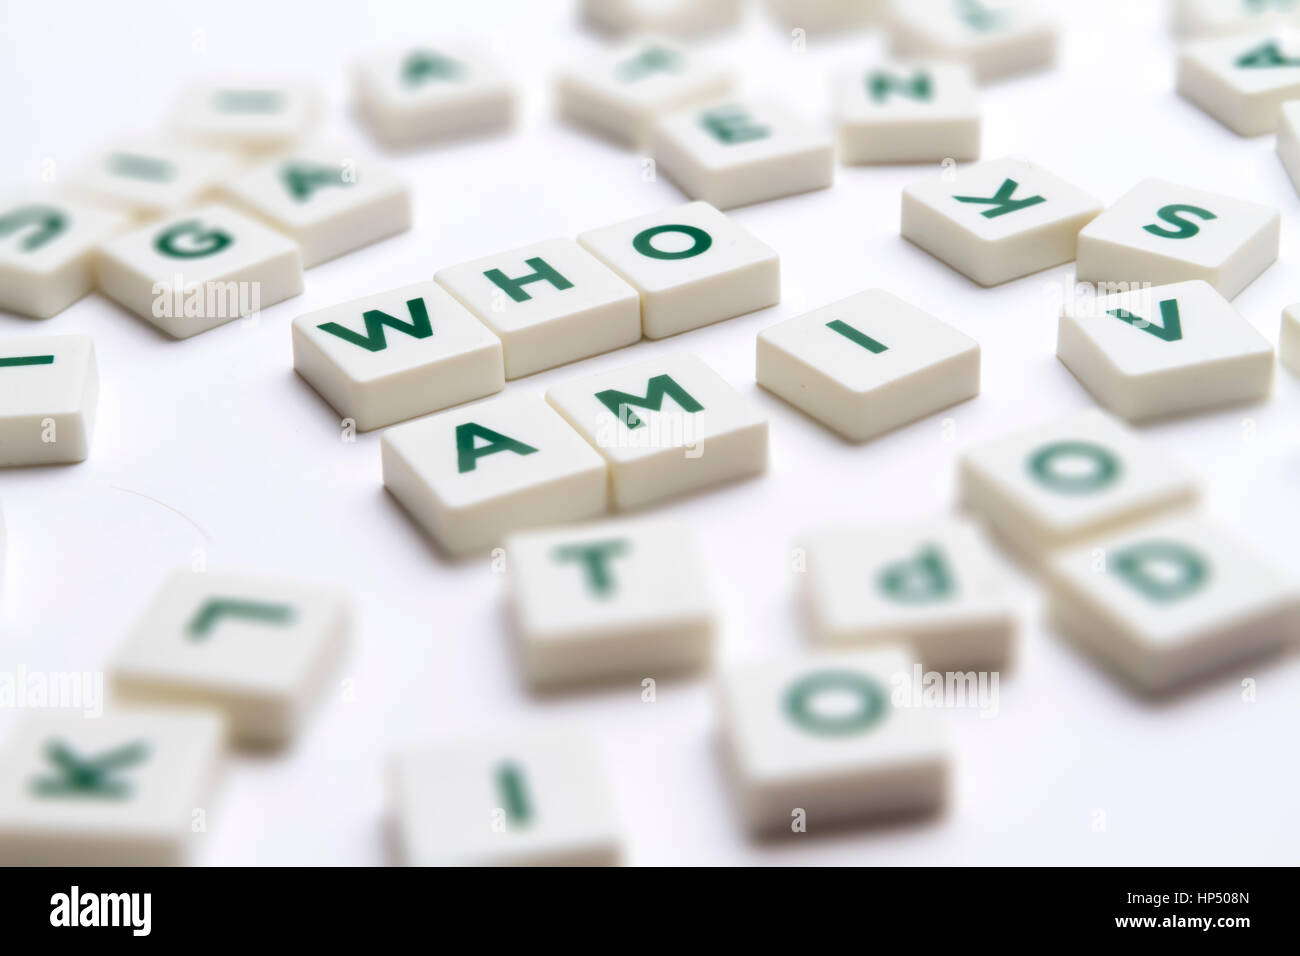 Text - Who am I made of single letter block with tilt-shift and shallow depth of field. - Stock Image